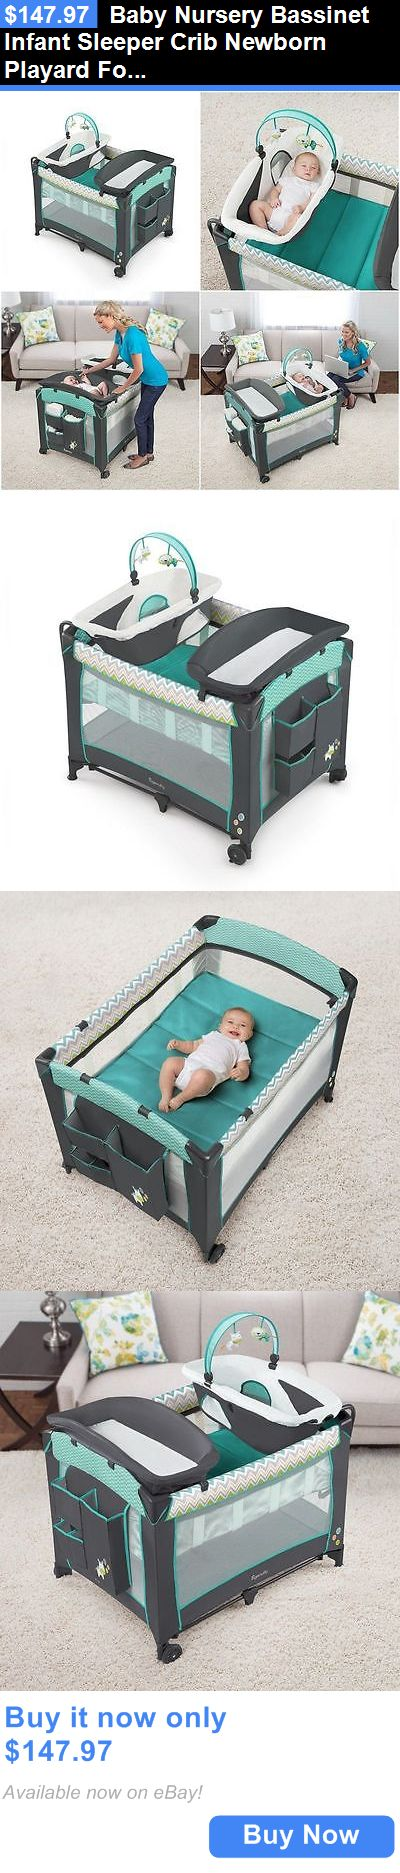 Baby Nursery: Baby Nursery Bassinet Infant Sleeper Crib Newborn Playard Folding Changing Table BUY IT NOW ONLY: $147.97